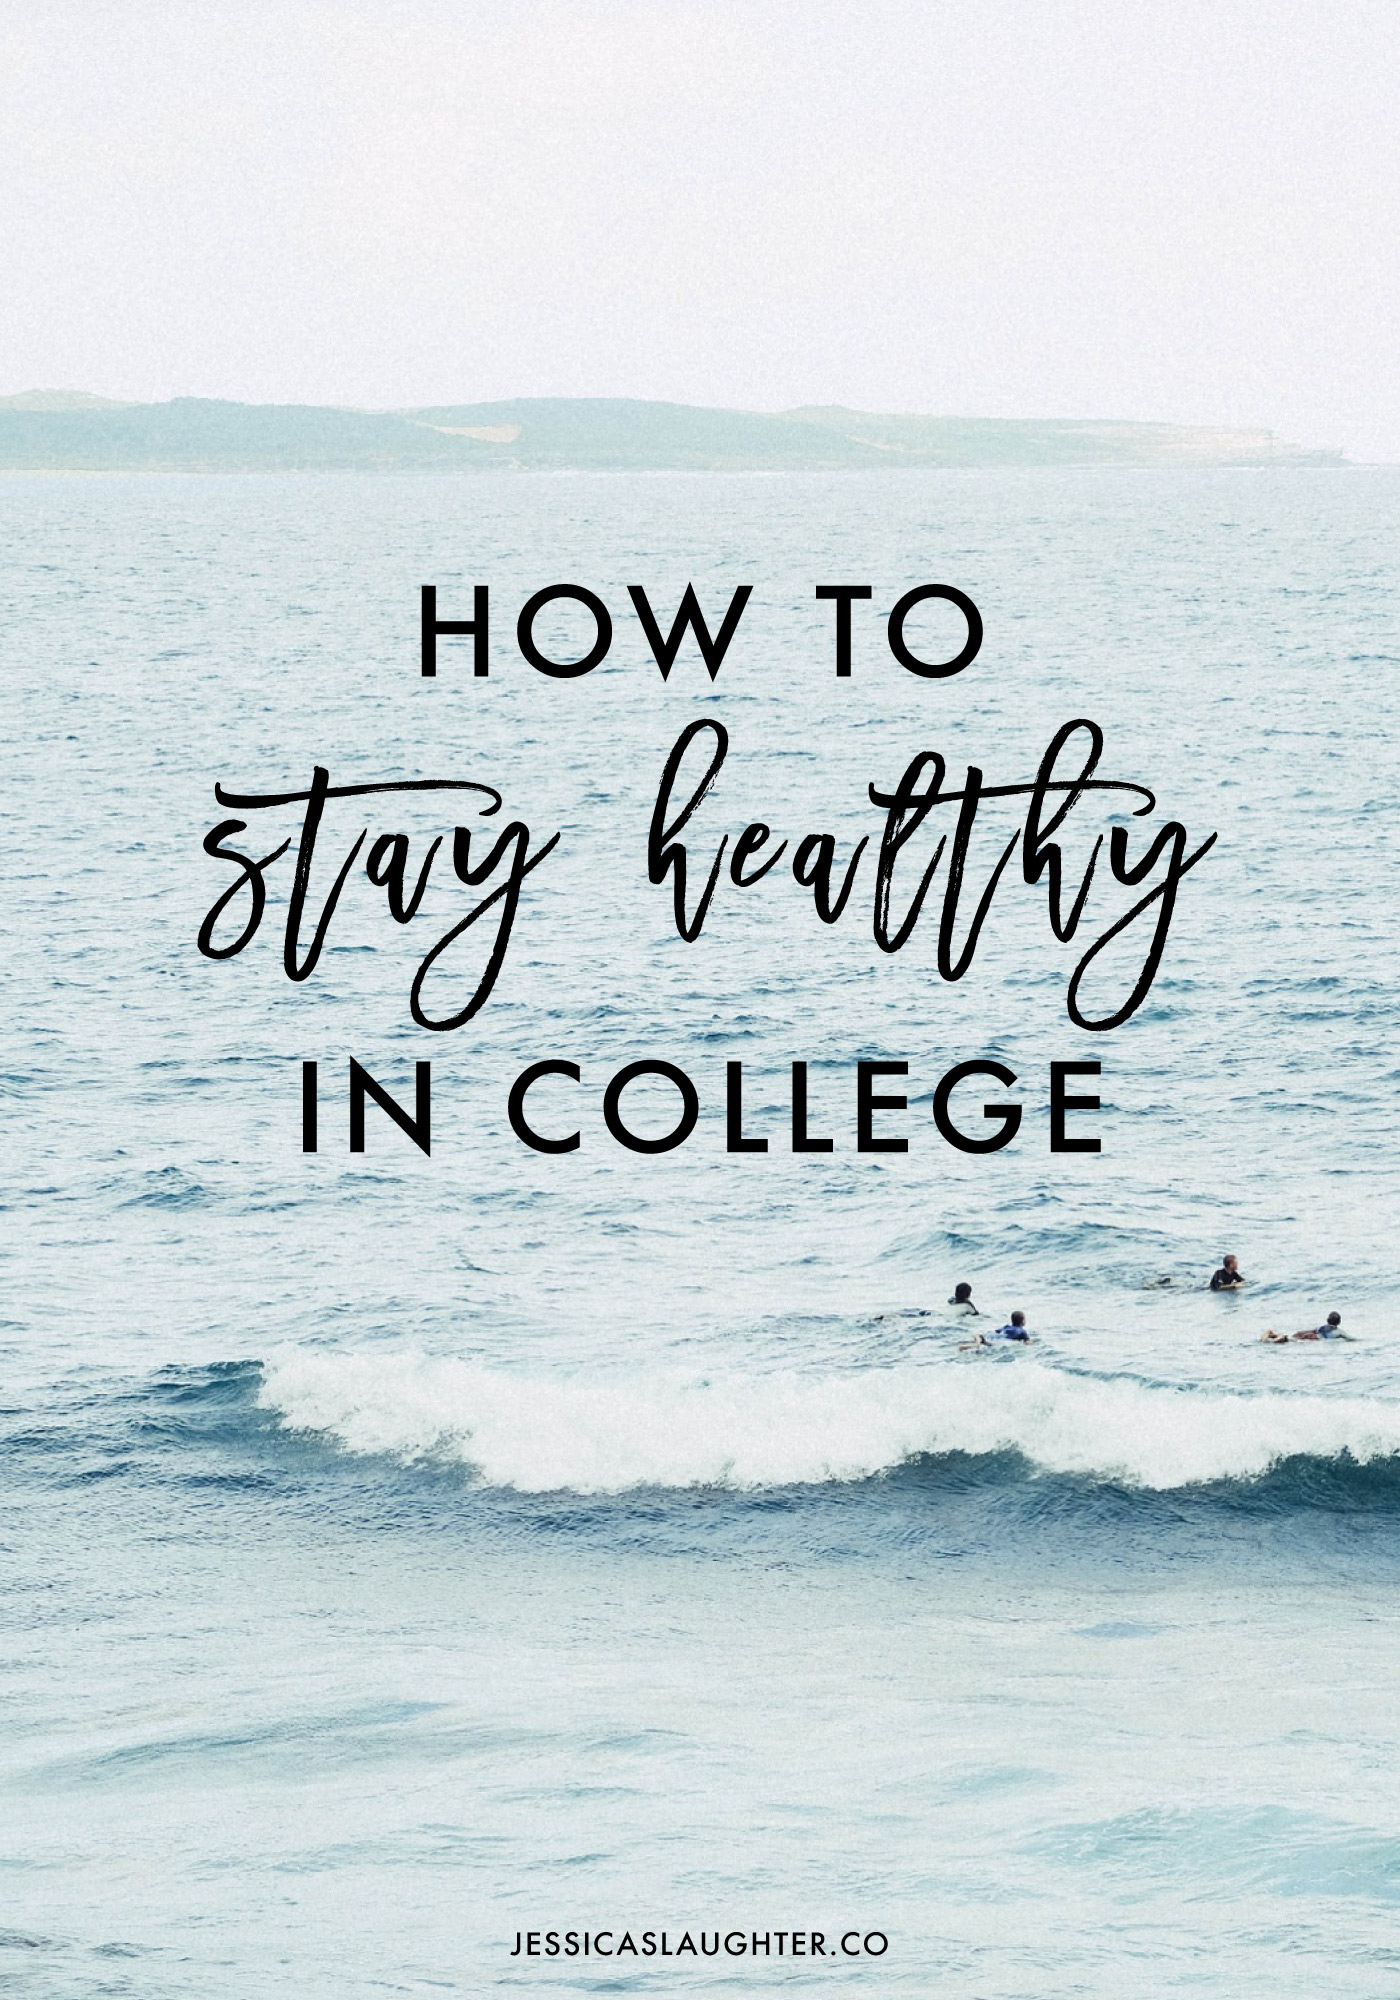 Staying healthy in college is SO important!